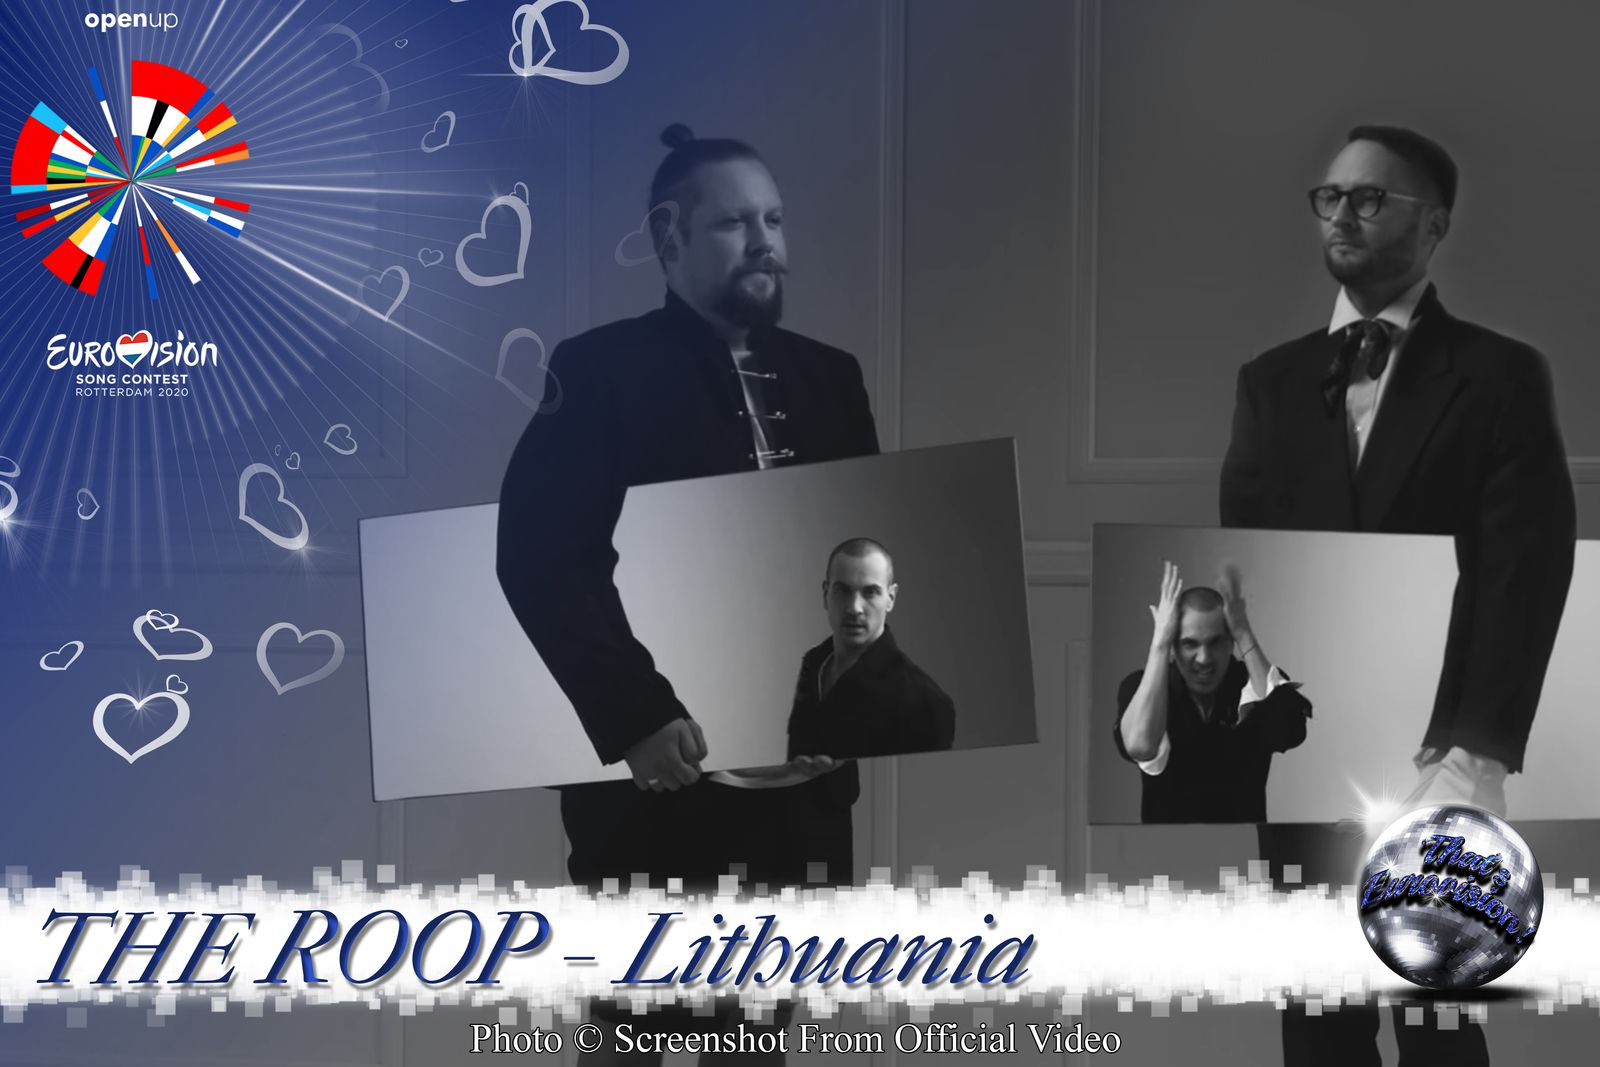 Lithuania 2020 - The ROOP - On Fire